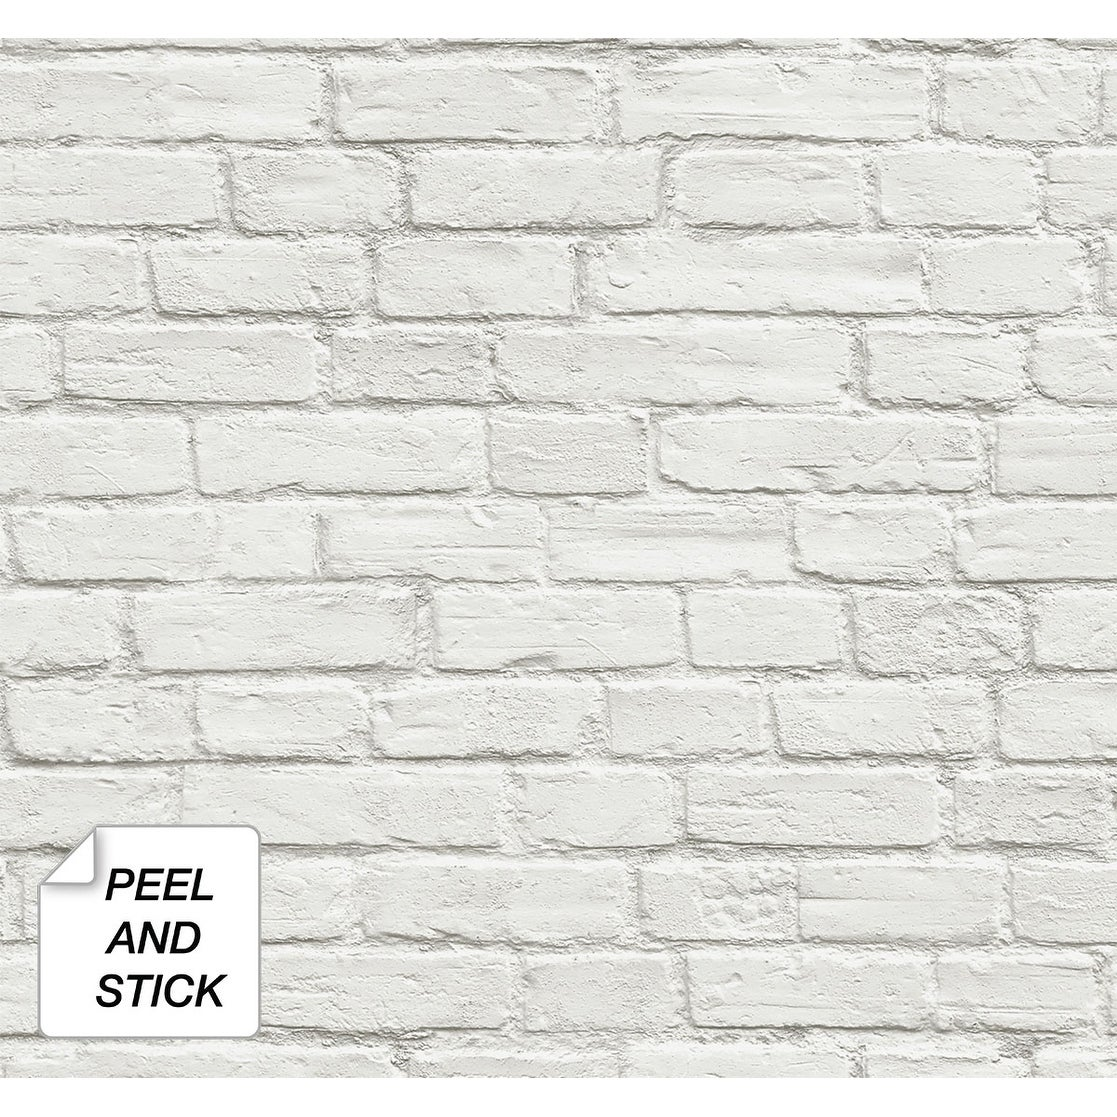 Nextwall Vintage White Brick Peel And Stick Removable Wallpaper 20 5 In W X 18 Ft L Overstock 31053541